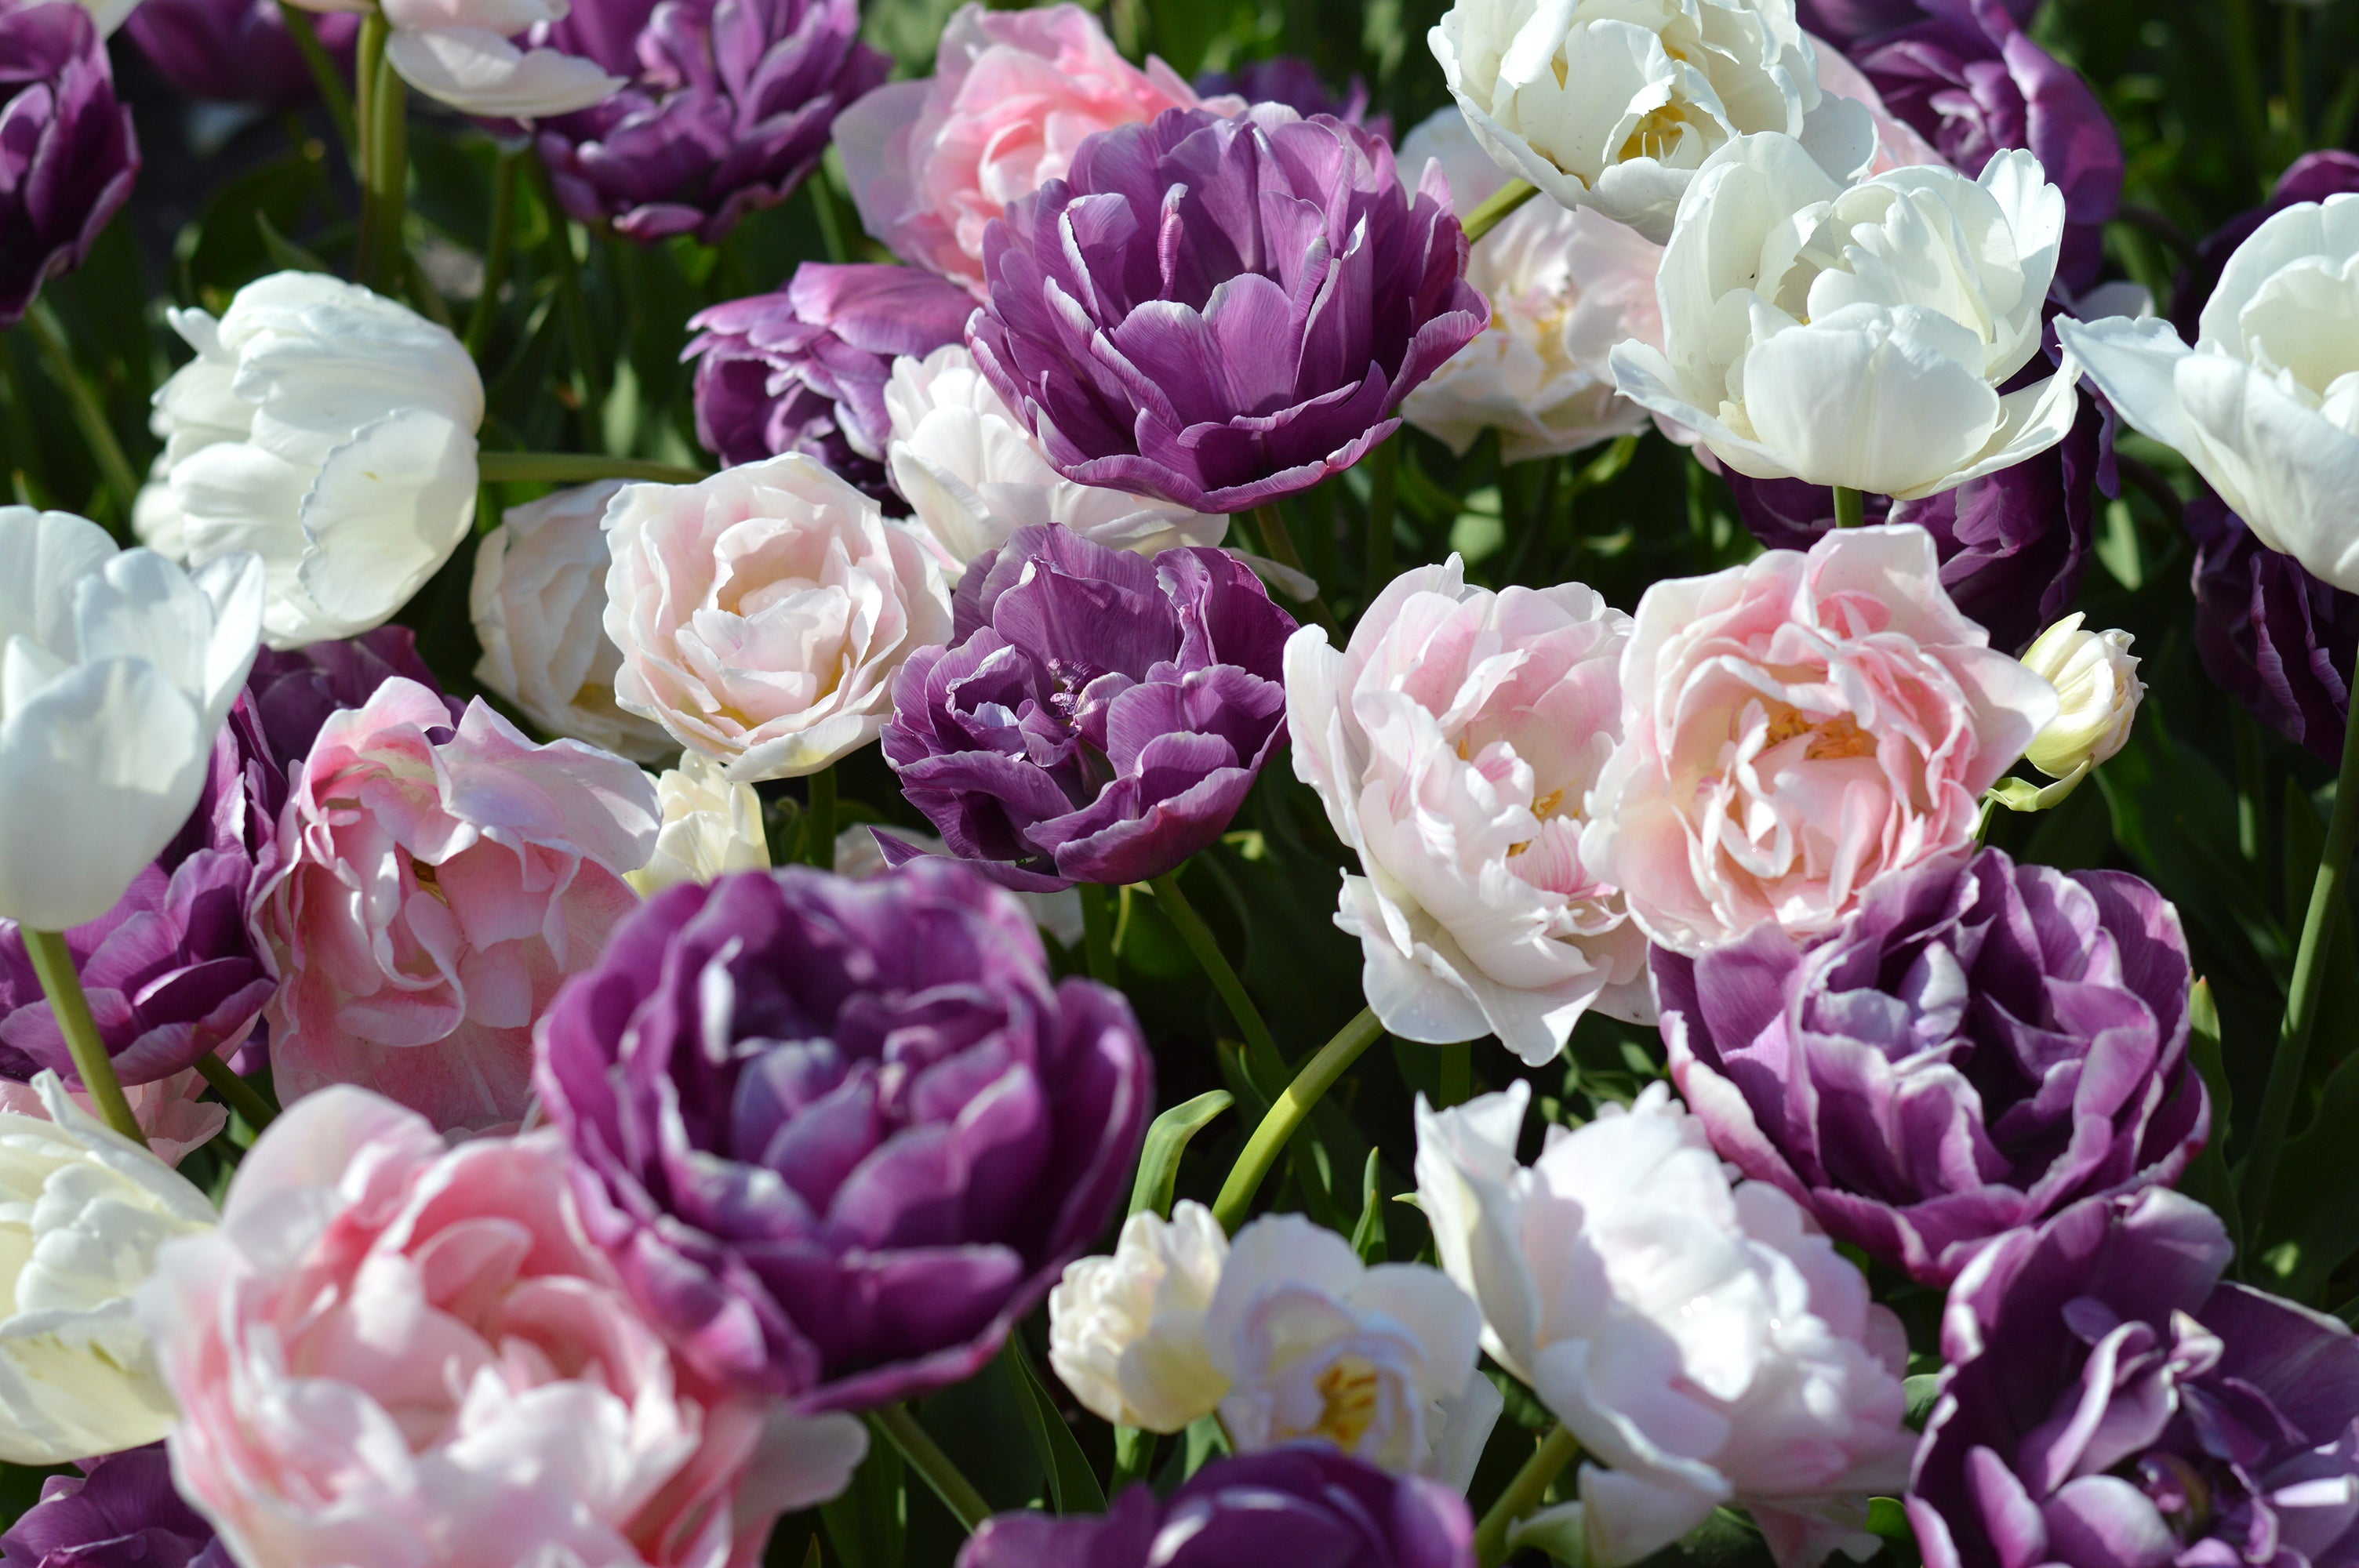 Tulip Wedding Gift Collection - THE BEST PLACE TO BUY TULIP BULBS